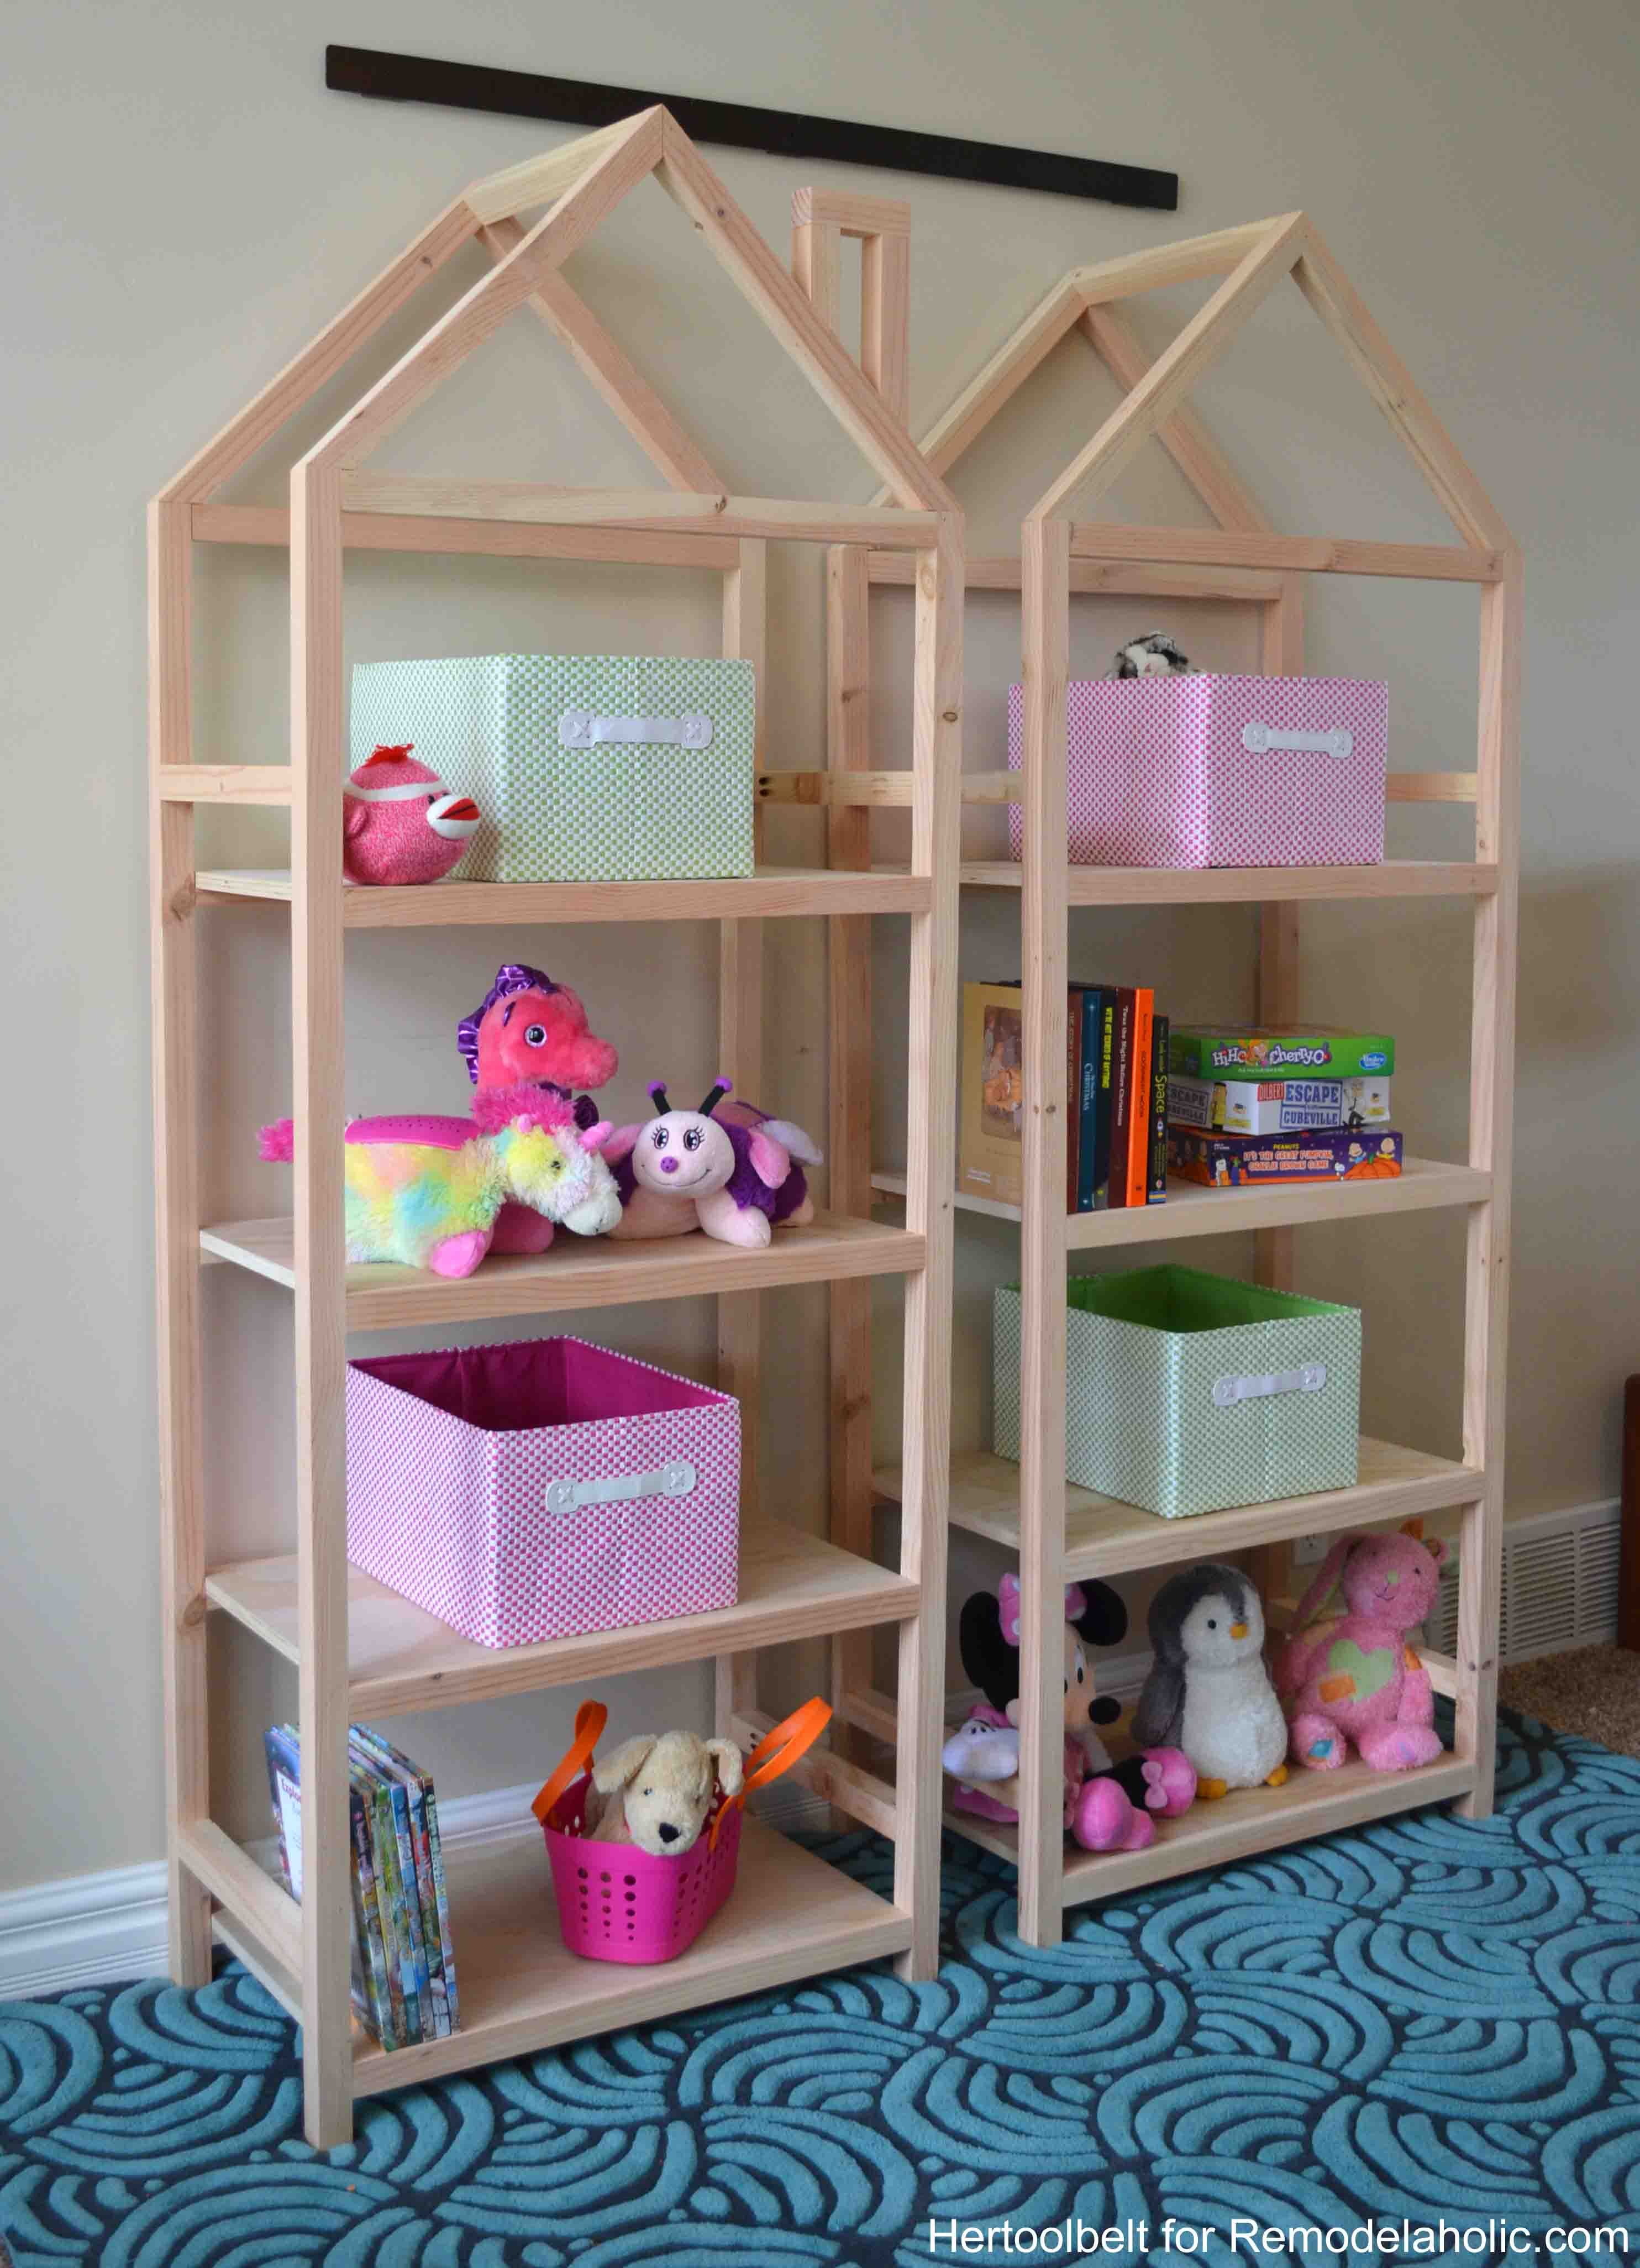 Wonderful Get Organized With These Adorable House Frame Bookshelves. Free And Easy  Plans To Build A